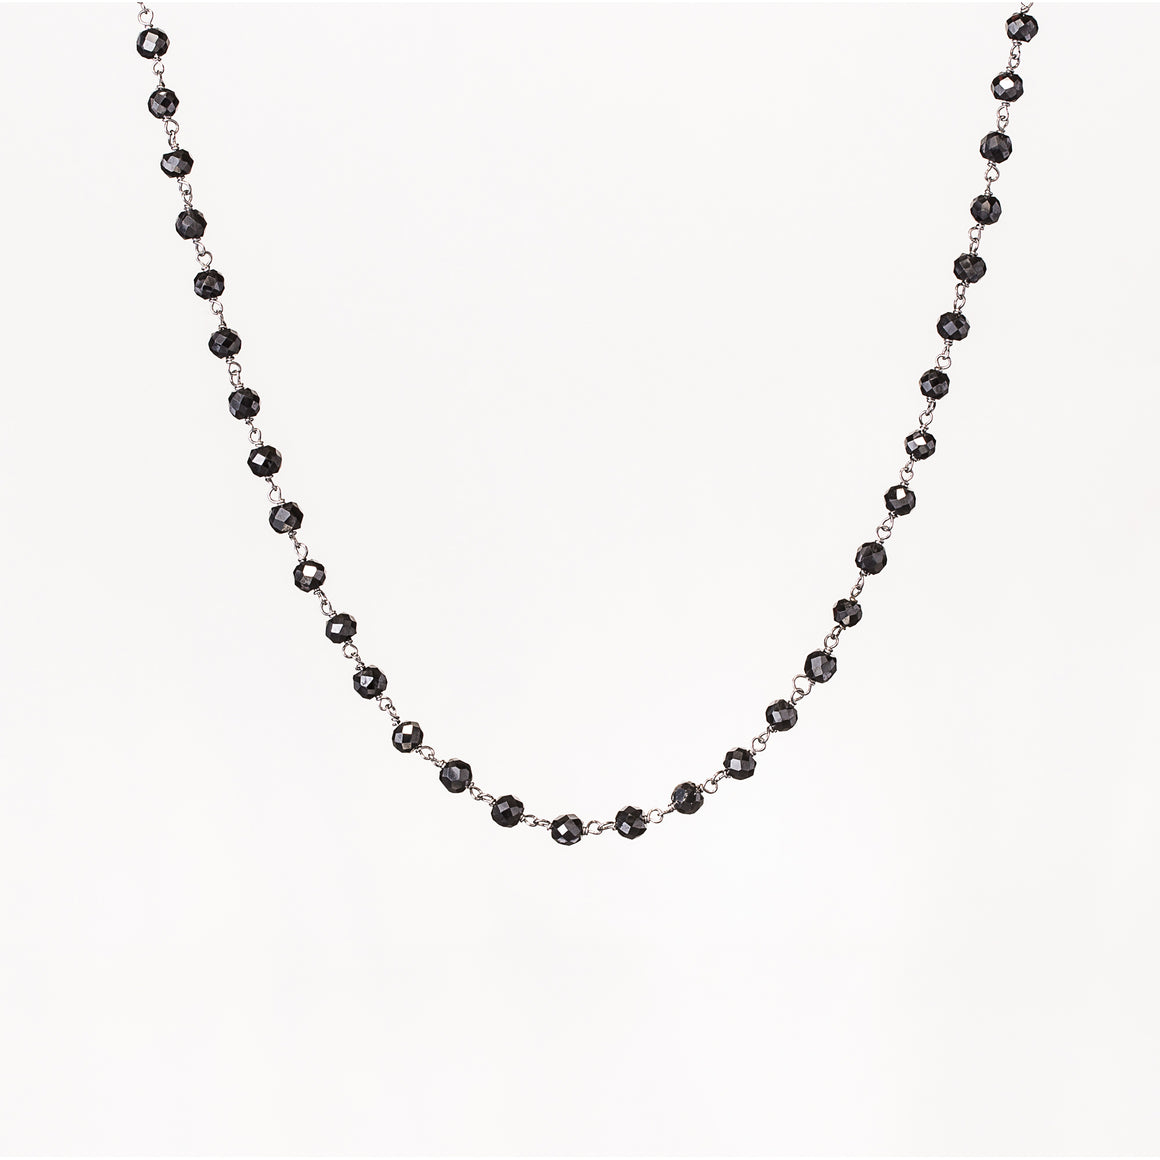 5mm Black Diamond Necklace in 925 Sterling Silver or 14K Gold